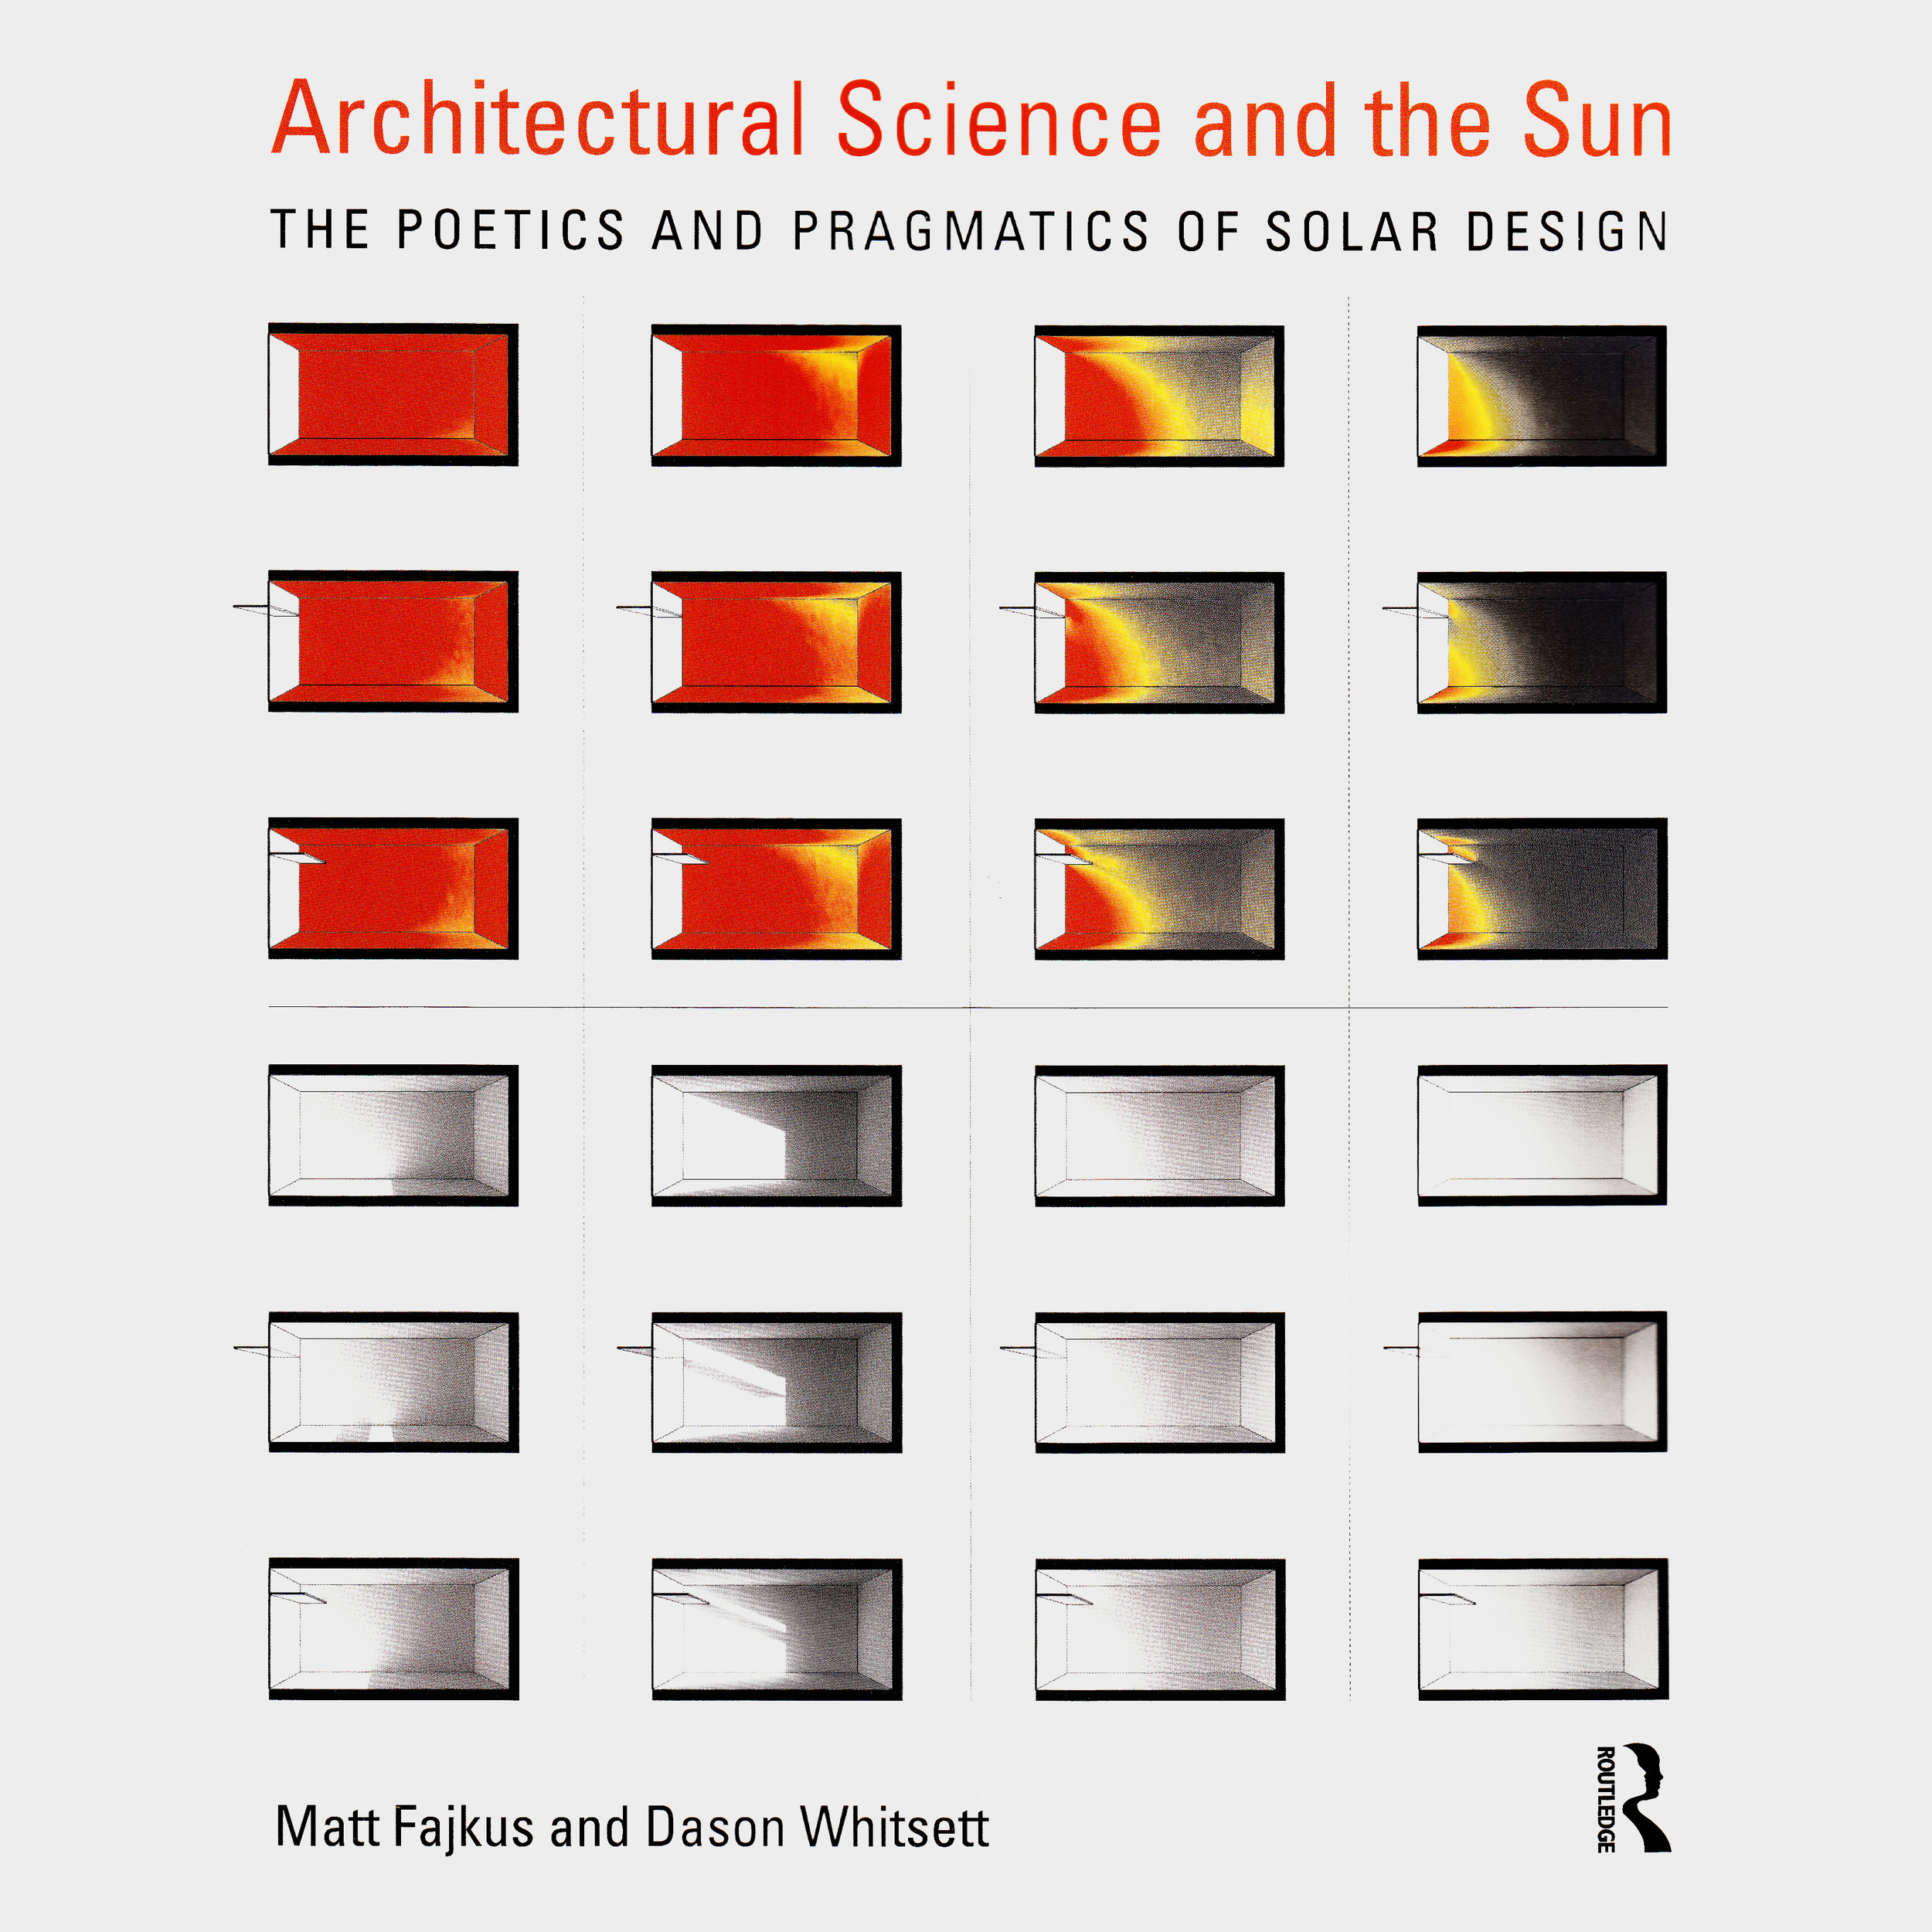 Architectural Science and the Sun by Matt Fajkus and Dason Whitsett-3.jpg